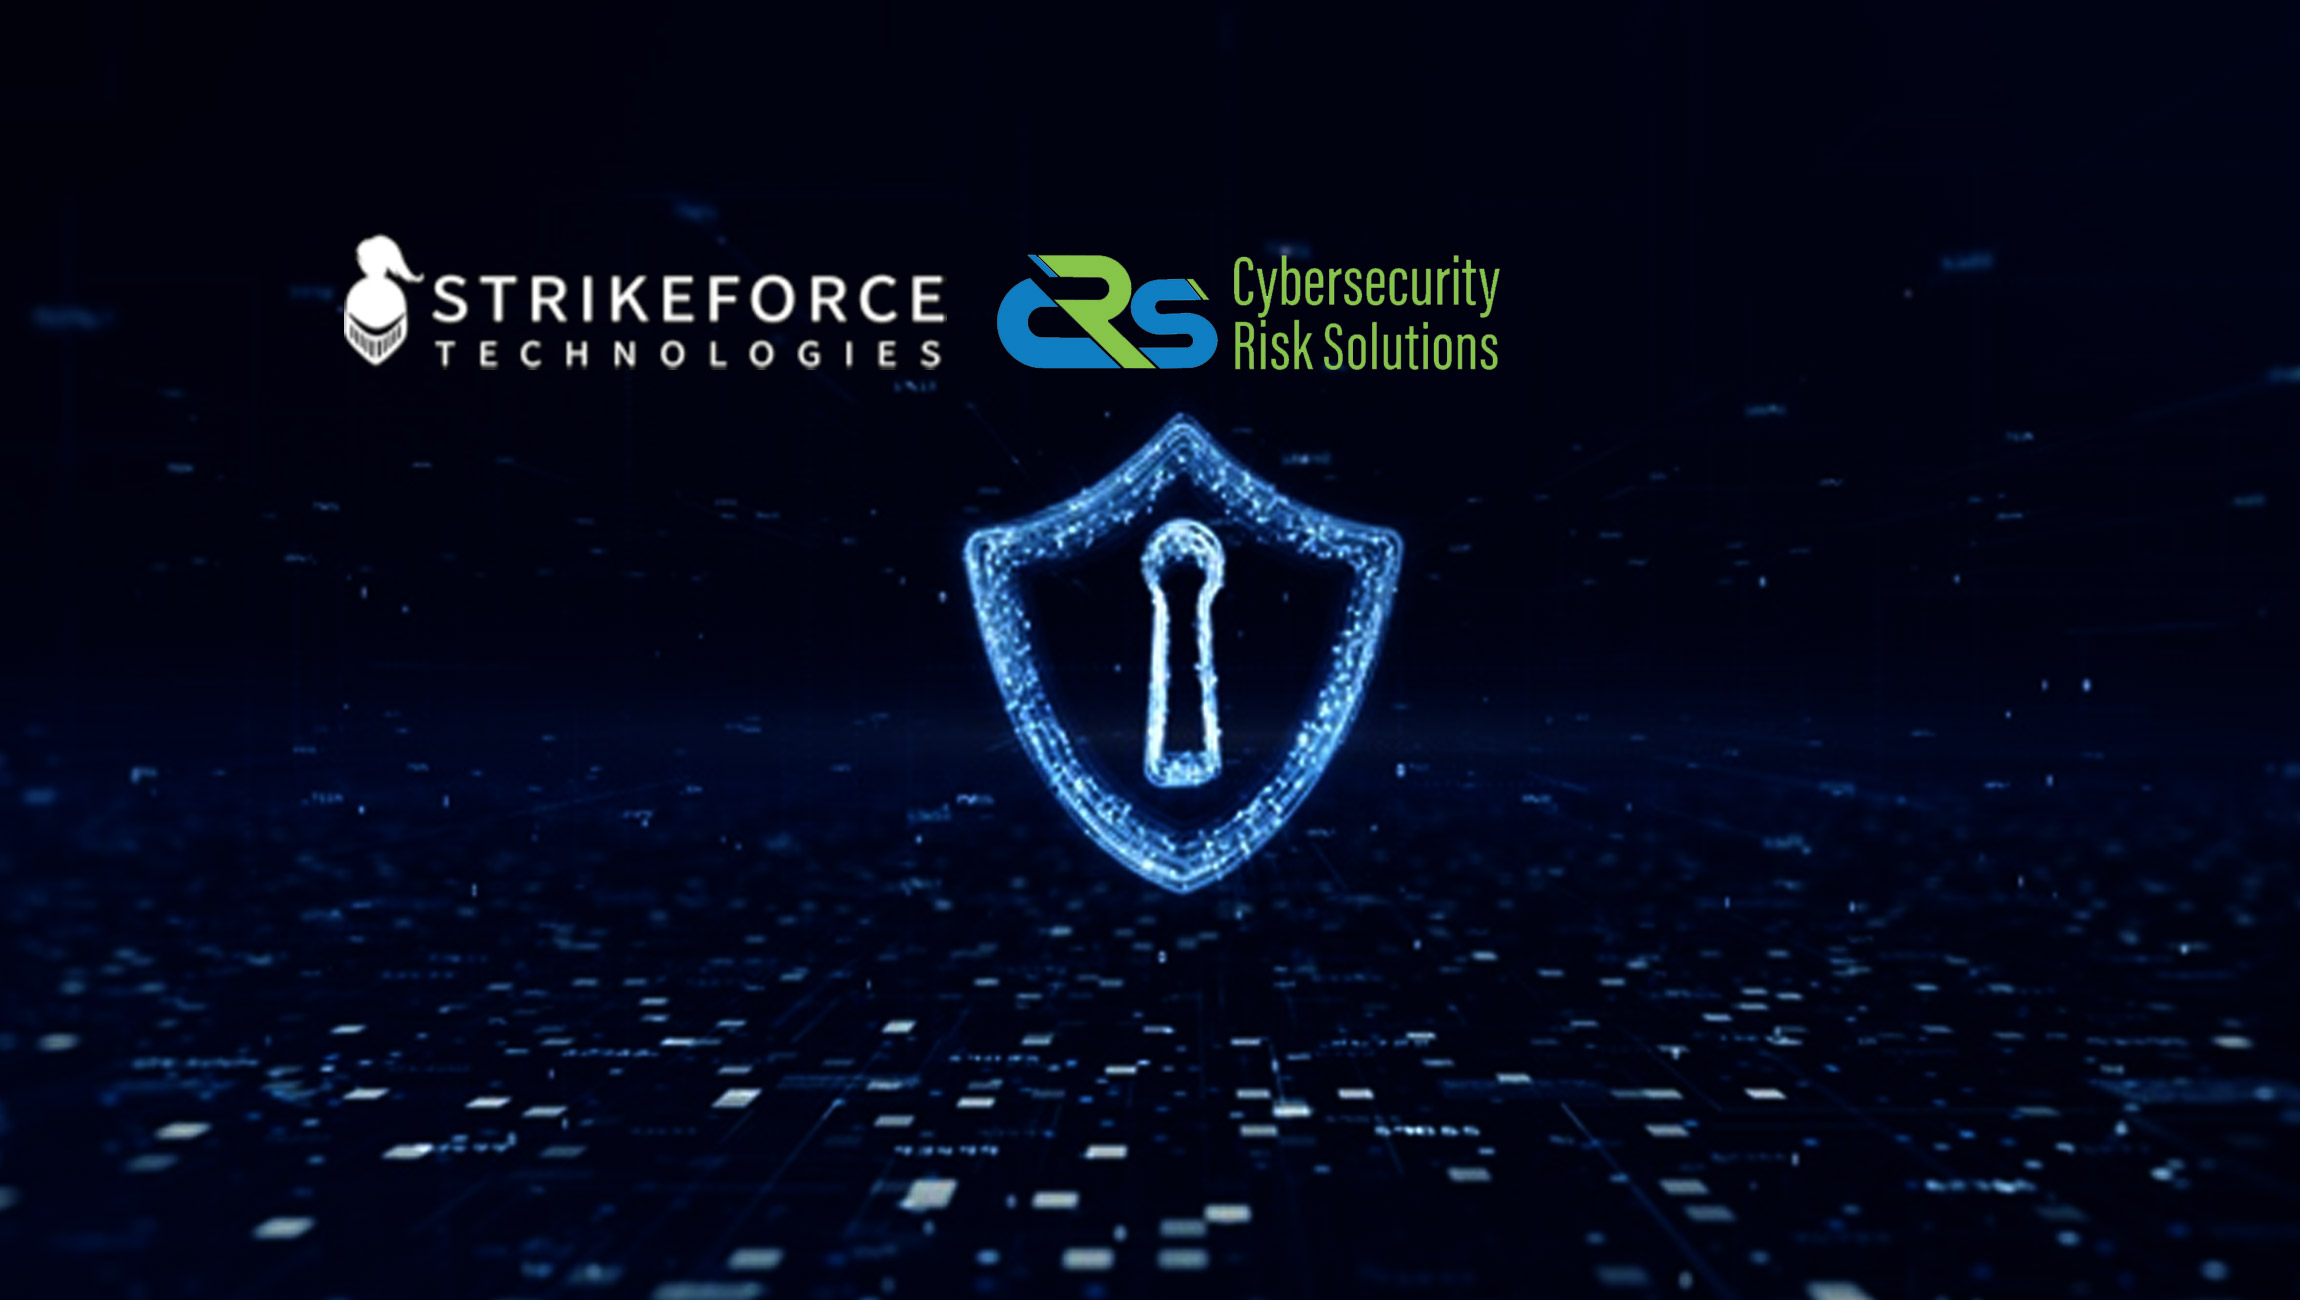 StrikeForce Technologies Launches Version 2.1 Of Its Secure Video Conferencing Solution With 5-Layers Of Meeting Protection For Businesses Of All Sizes